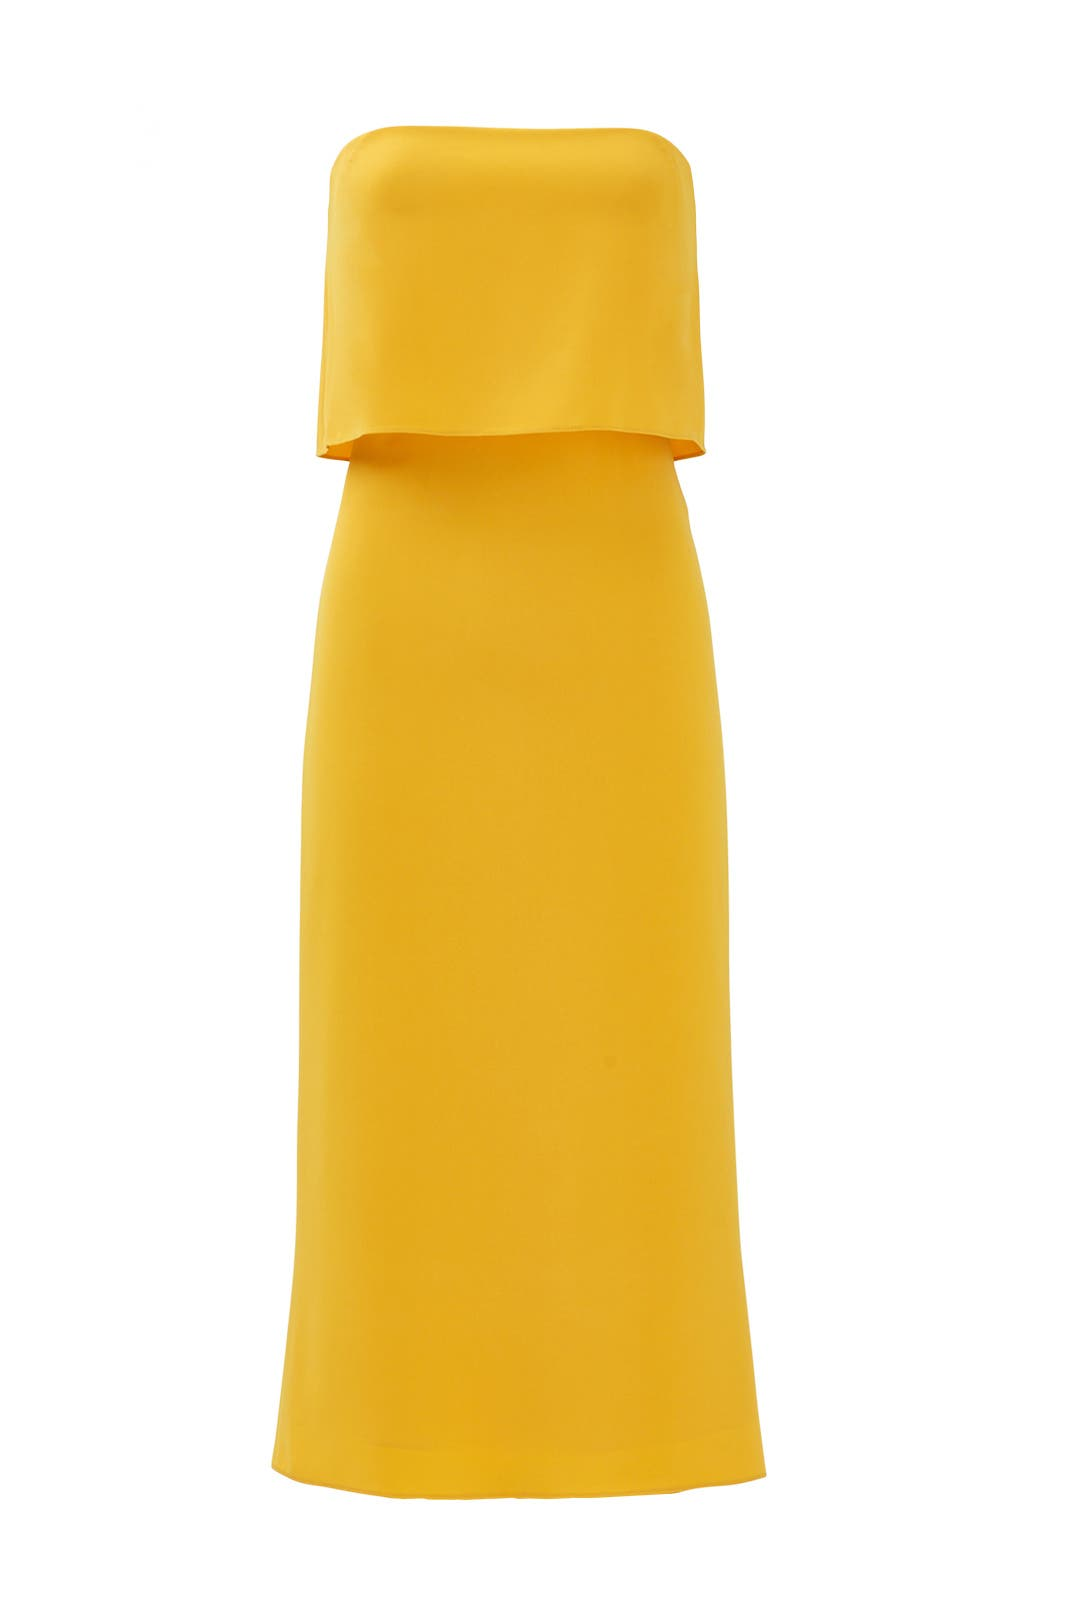 Marigold Strapless Tiered Dress by Halston Heritage for $50 - $65 ...